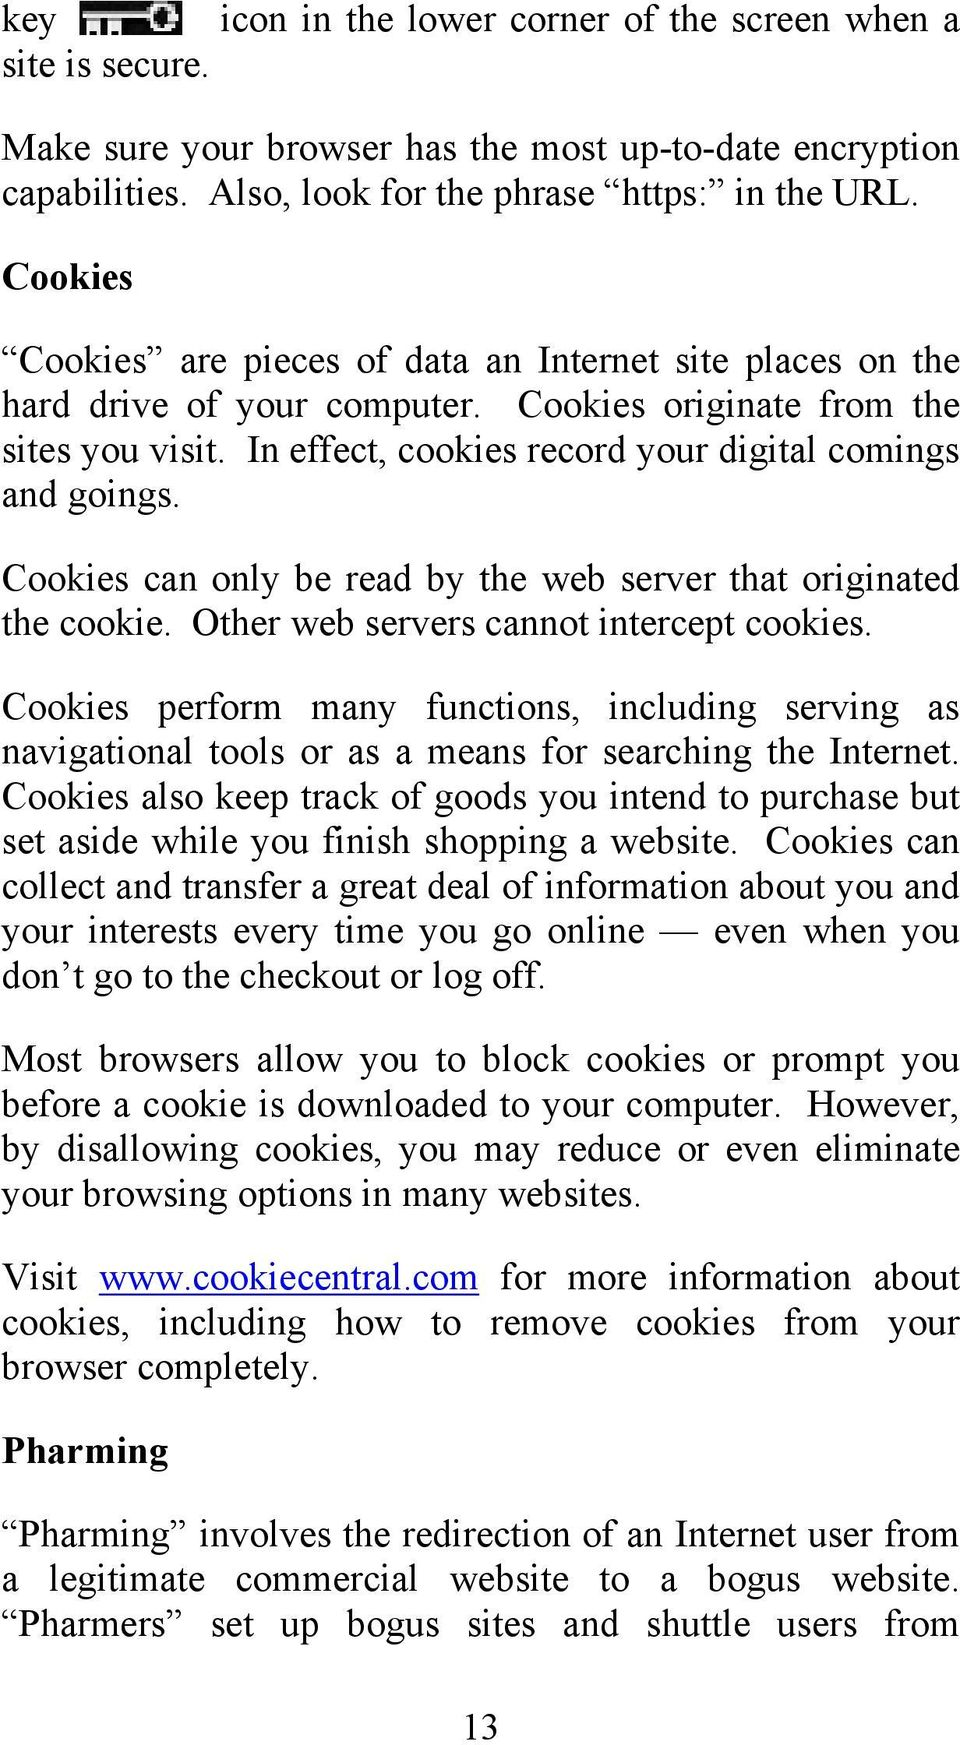 Cookies can only be read by the web server that originated the cookie. Other web servers cannot intercept cookies.